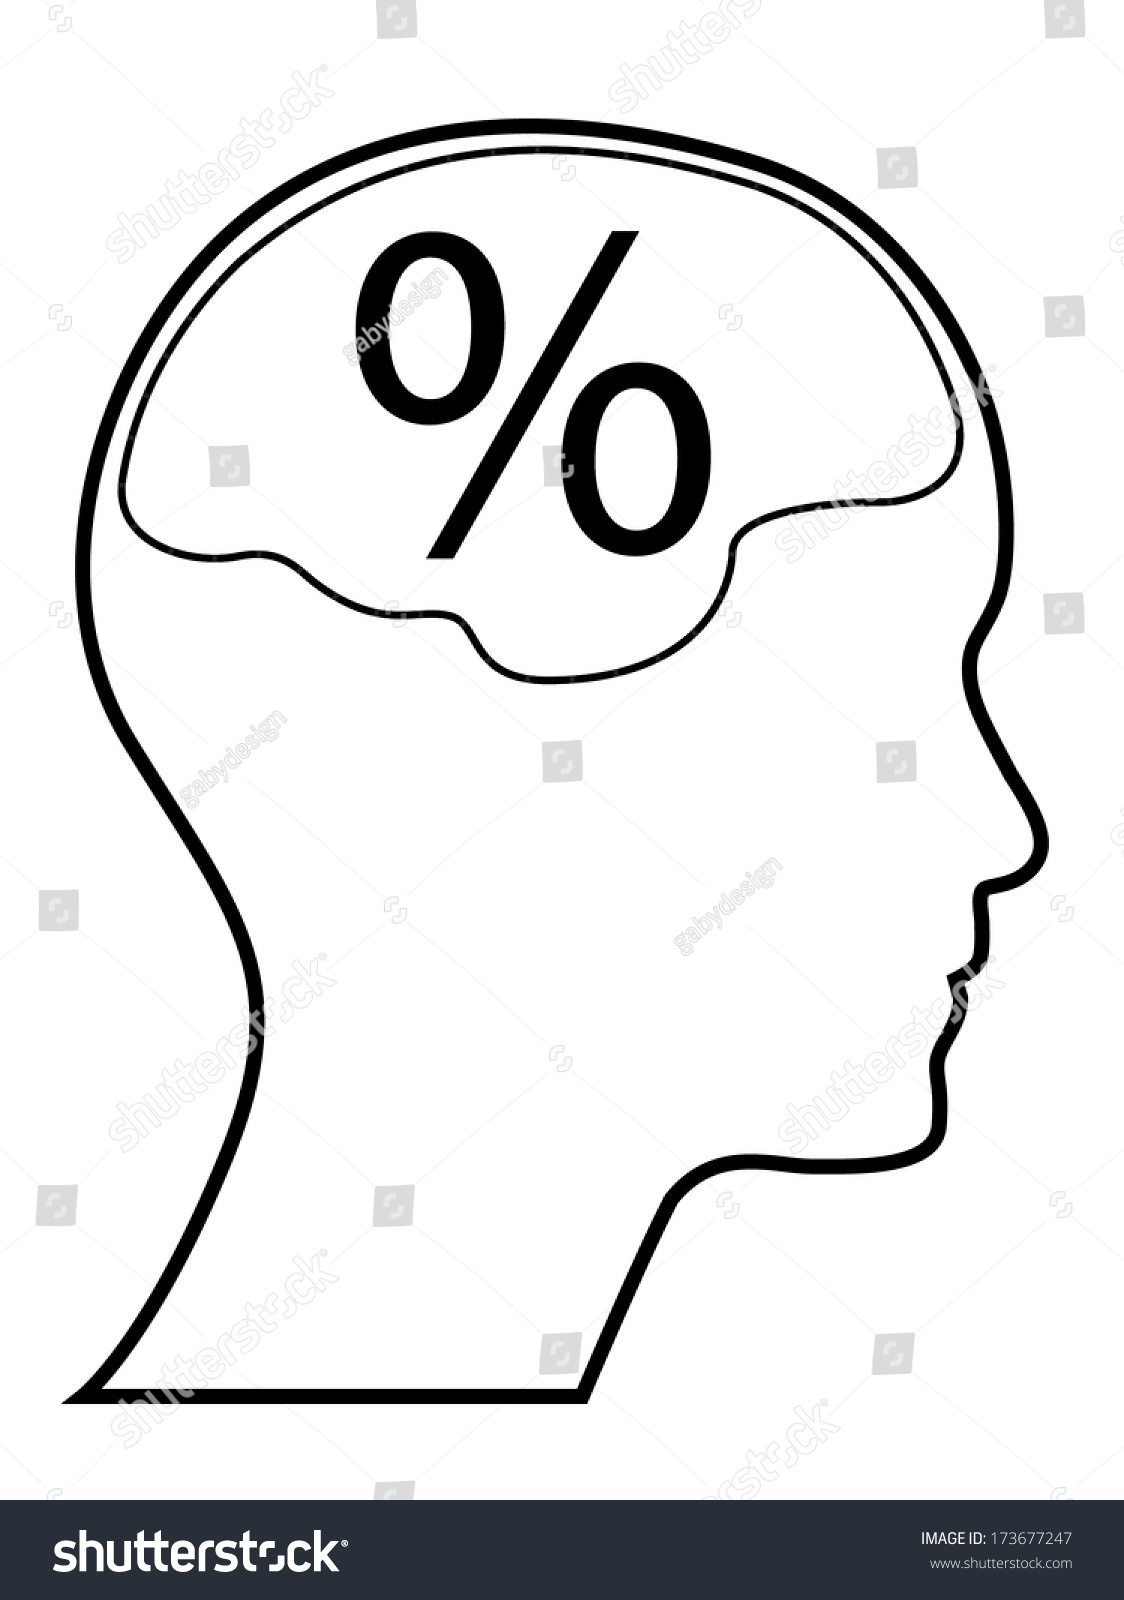 Percentage Mark Human Head Brain Outline Stock Vector Royalty Free Easy Diagram Car Interior Design With And Version Abstract To Edit Eps10